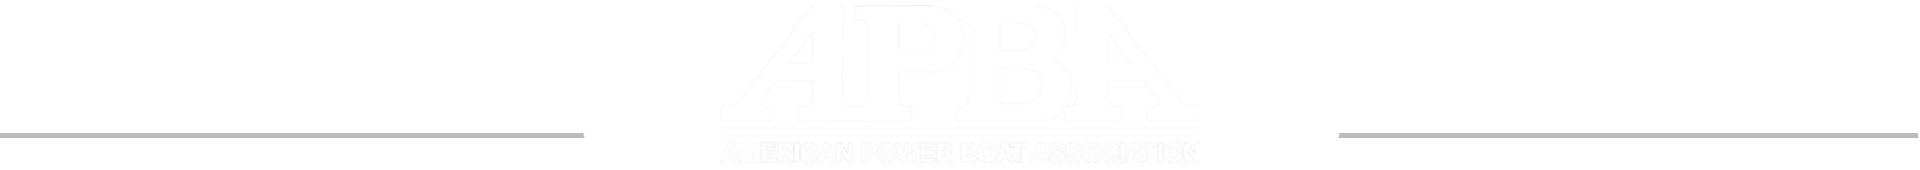 american power boat association